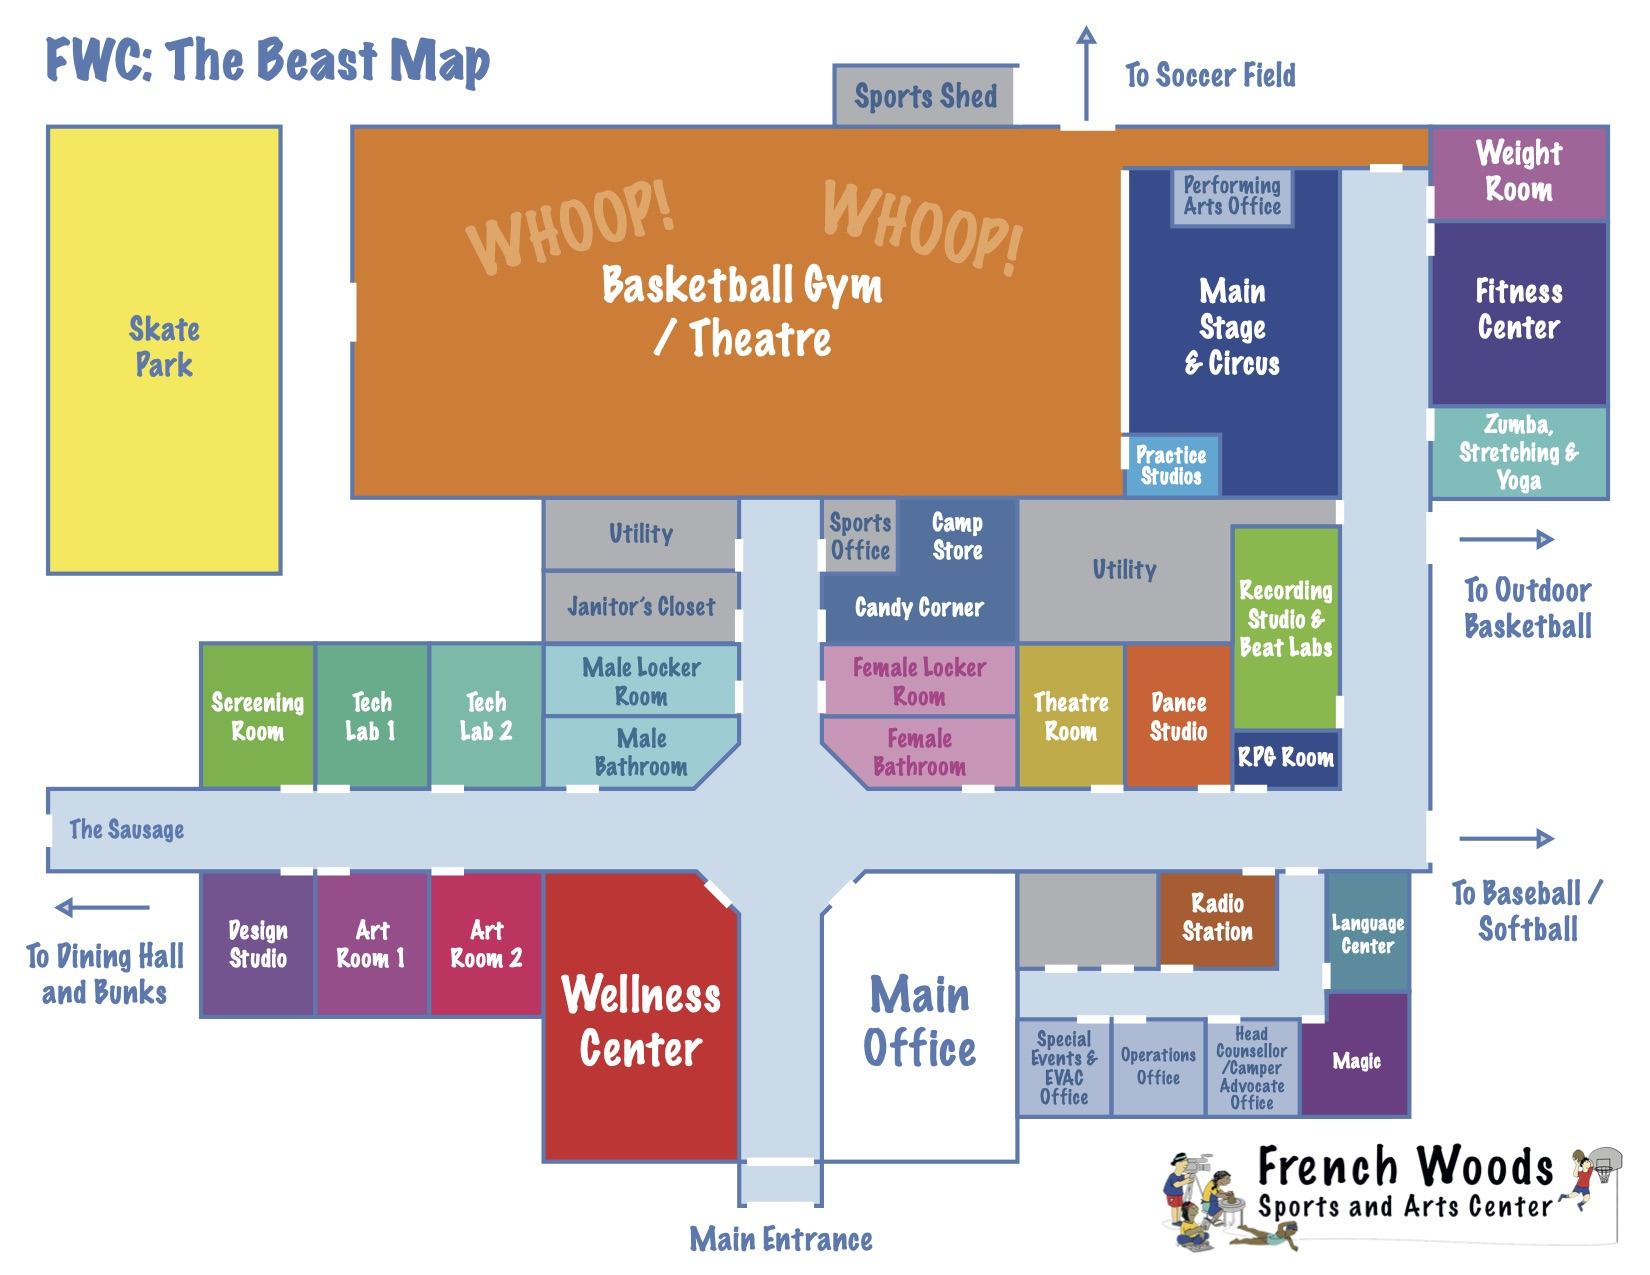 Map of The Beast building